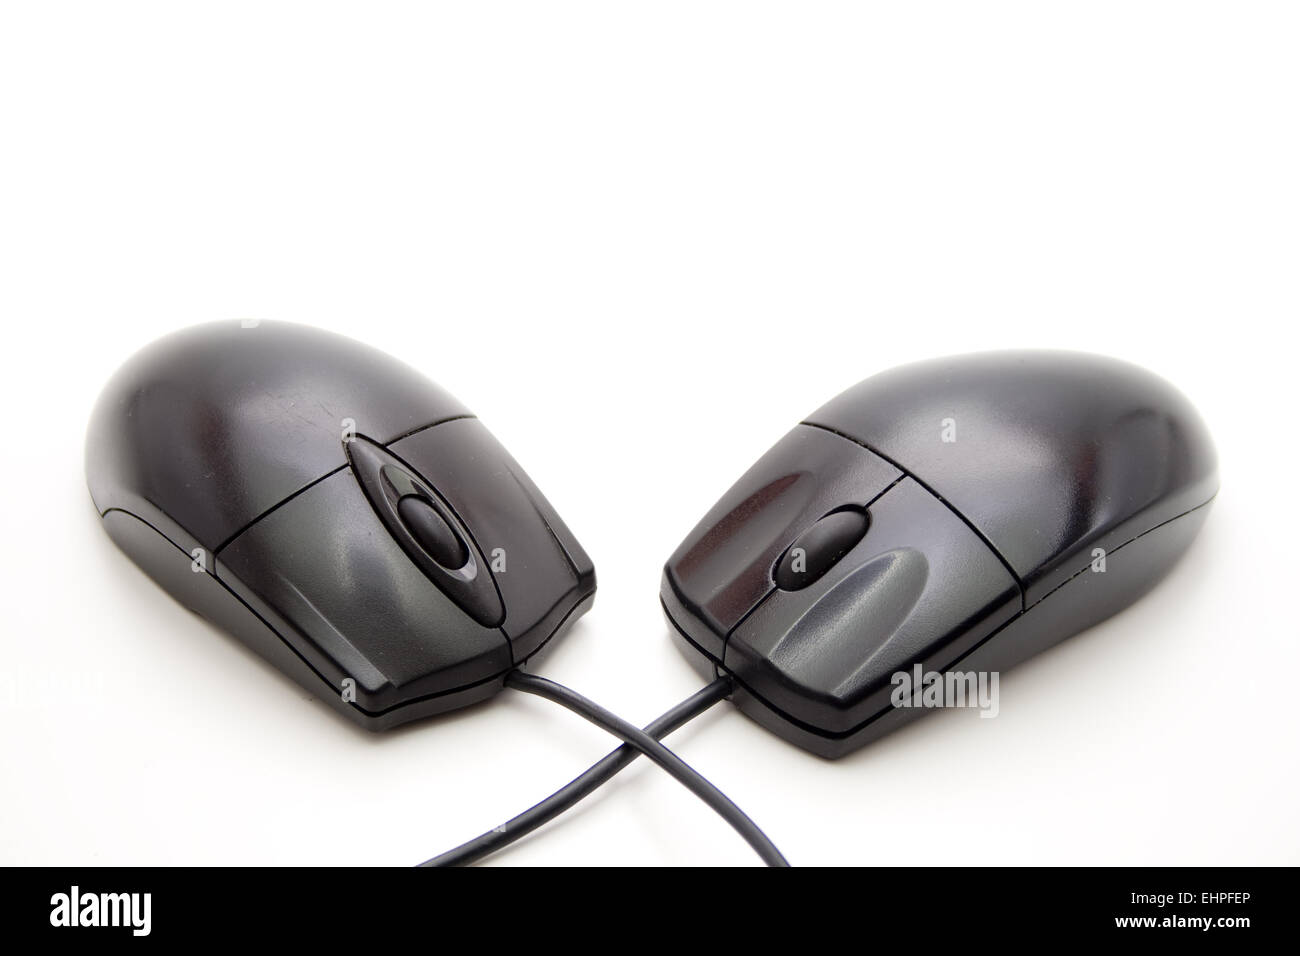 Computer mouse - Stock Image